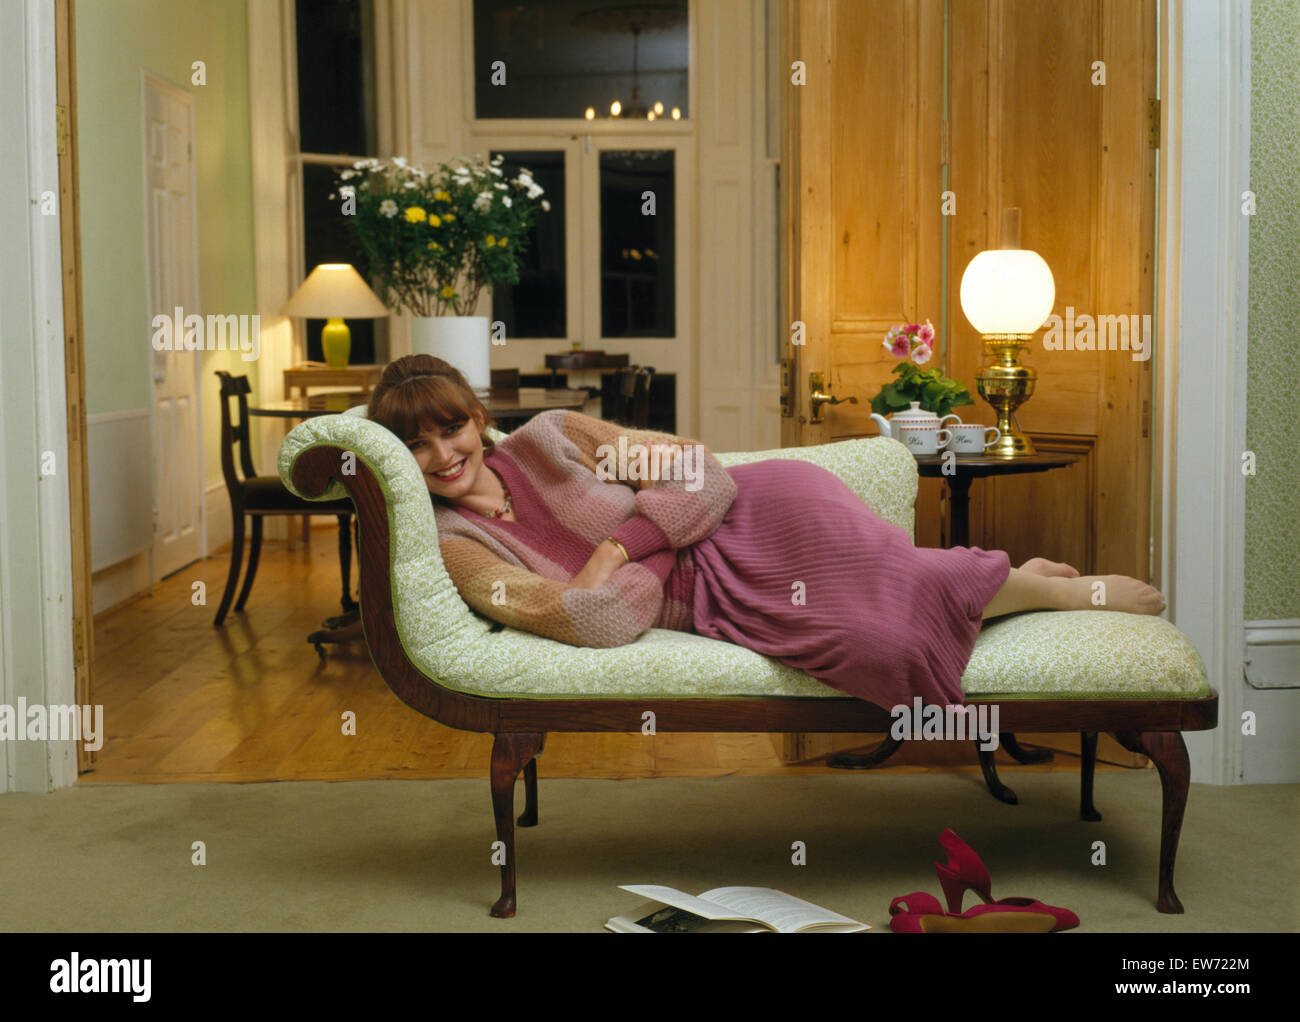 Chaise Longue Stock Photos & Chaise Longue Stock Images - Alamy on victorian tables, victorian wheelchair, victorian loveseat, victorian sideboard, victorian urns, victorian rocking chair, victorian credenza, victorian folding chair, victorian office chair, victorian couch, victorian nursing chair, victorian club chair, victorian chest, victorian era chaise, victorian candles, victorian recliner, victorian chaise furniture, victorian chaise lounge, victorian mother's day, victorian country,